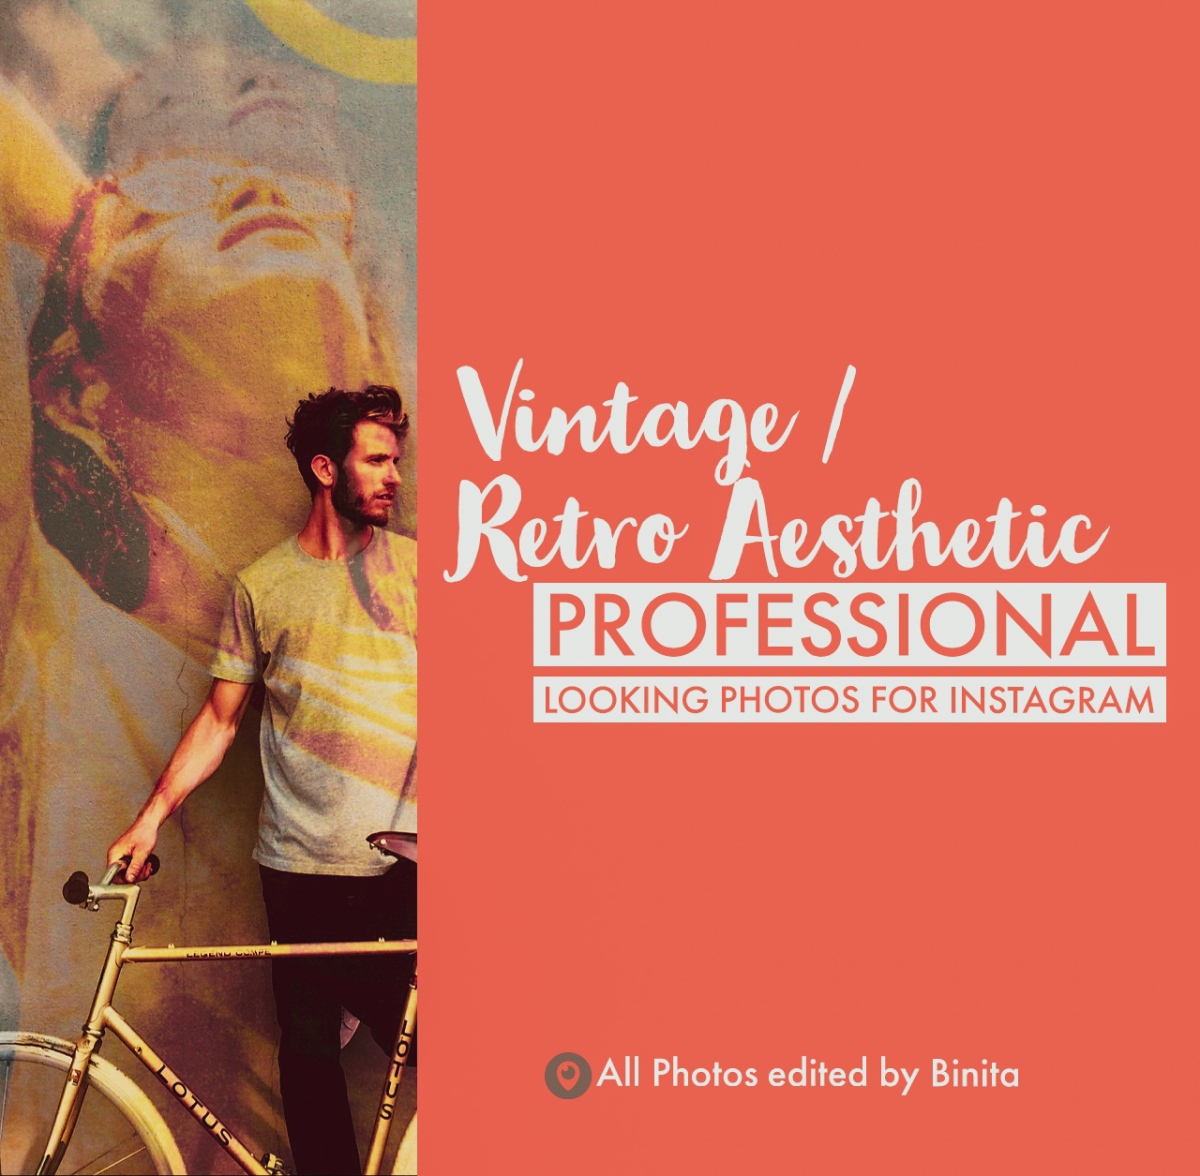 Vintage Aesthetics: Free Photo edits for Instagram